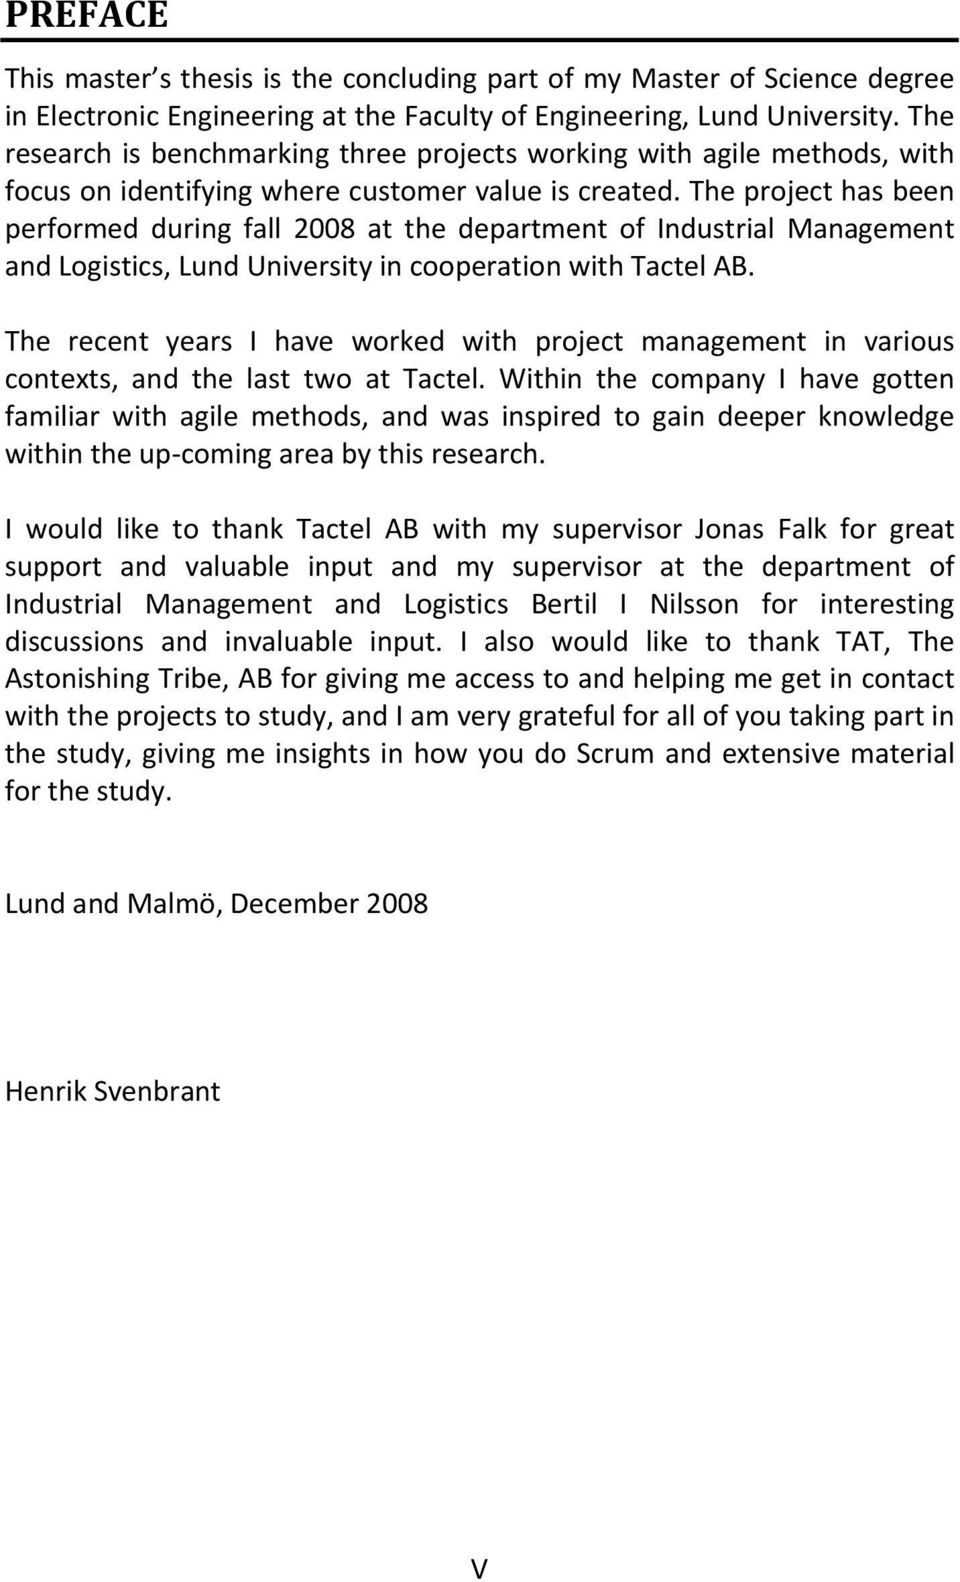 The project has been performed during fall 2008 at the department of Industrial Management and Logistics, Lund University in cooperation with Tactel AB.